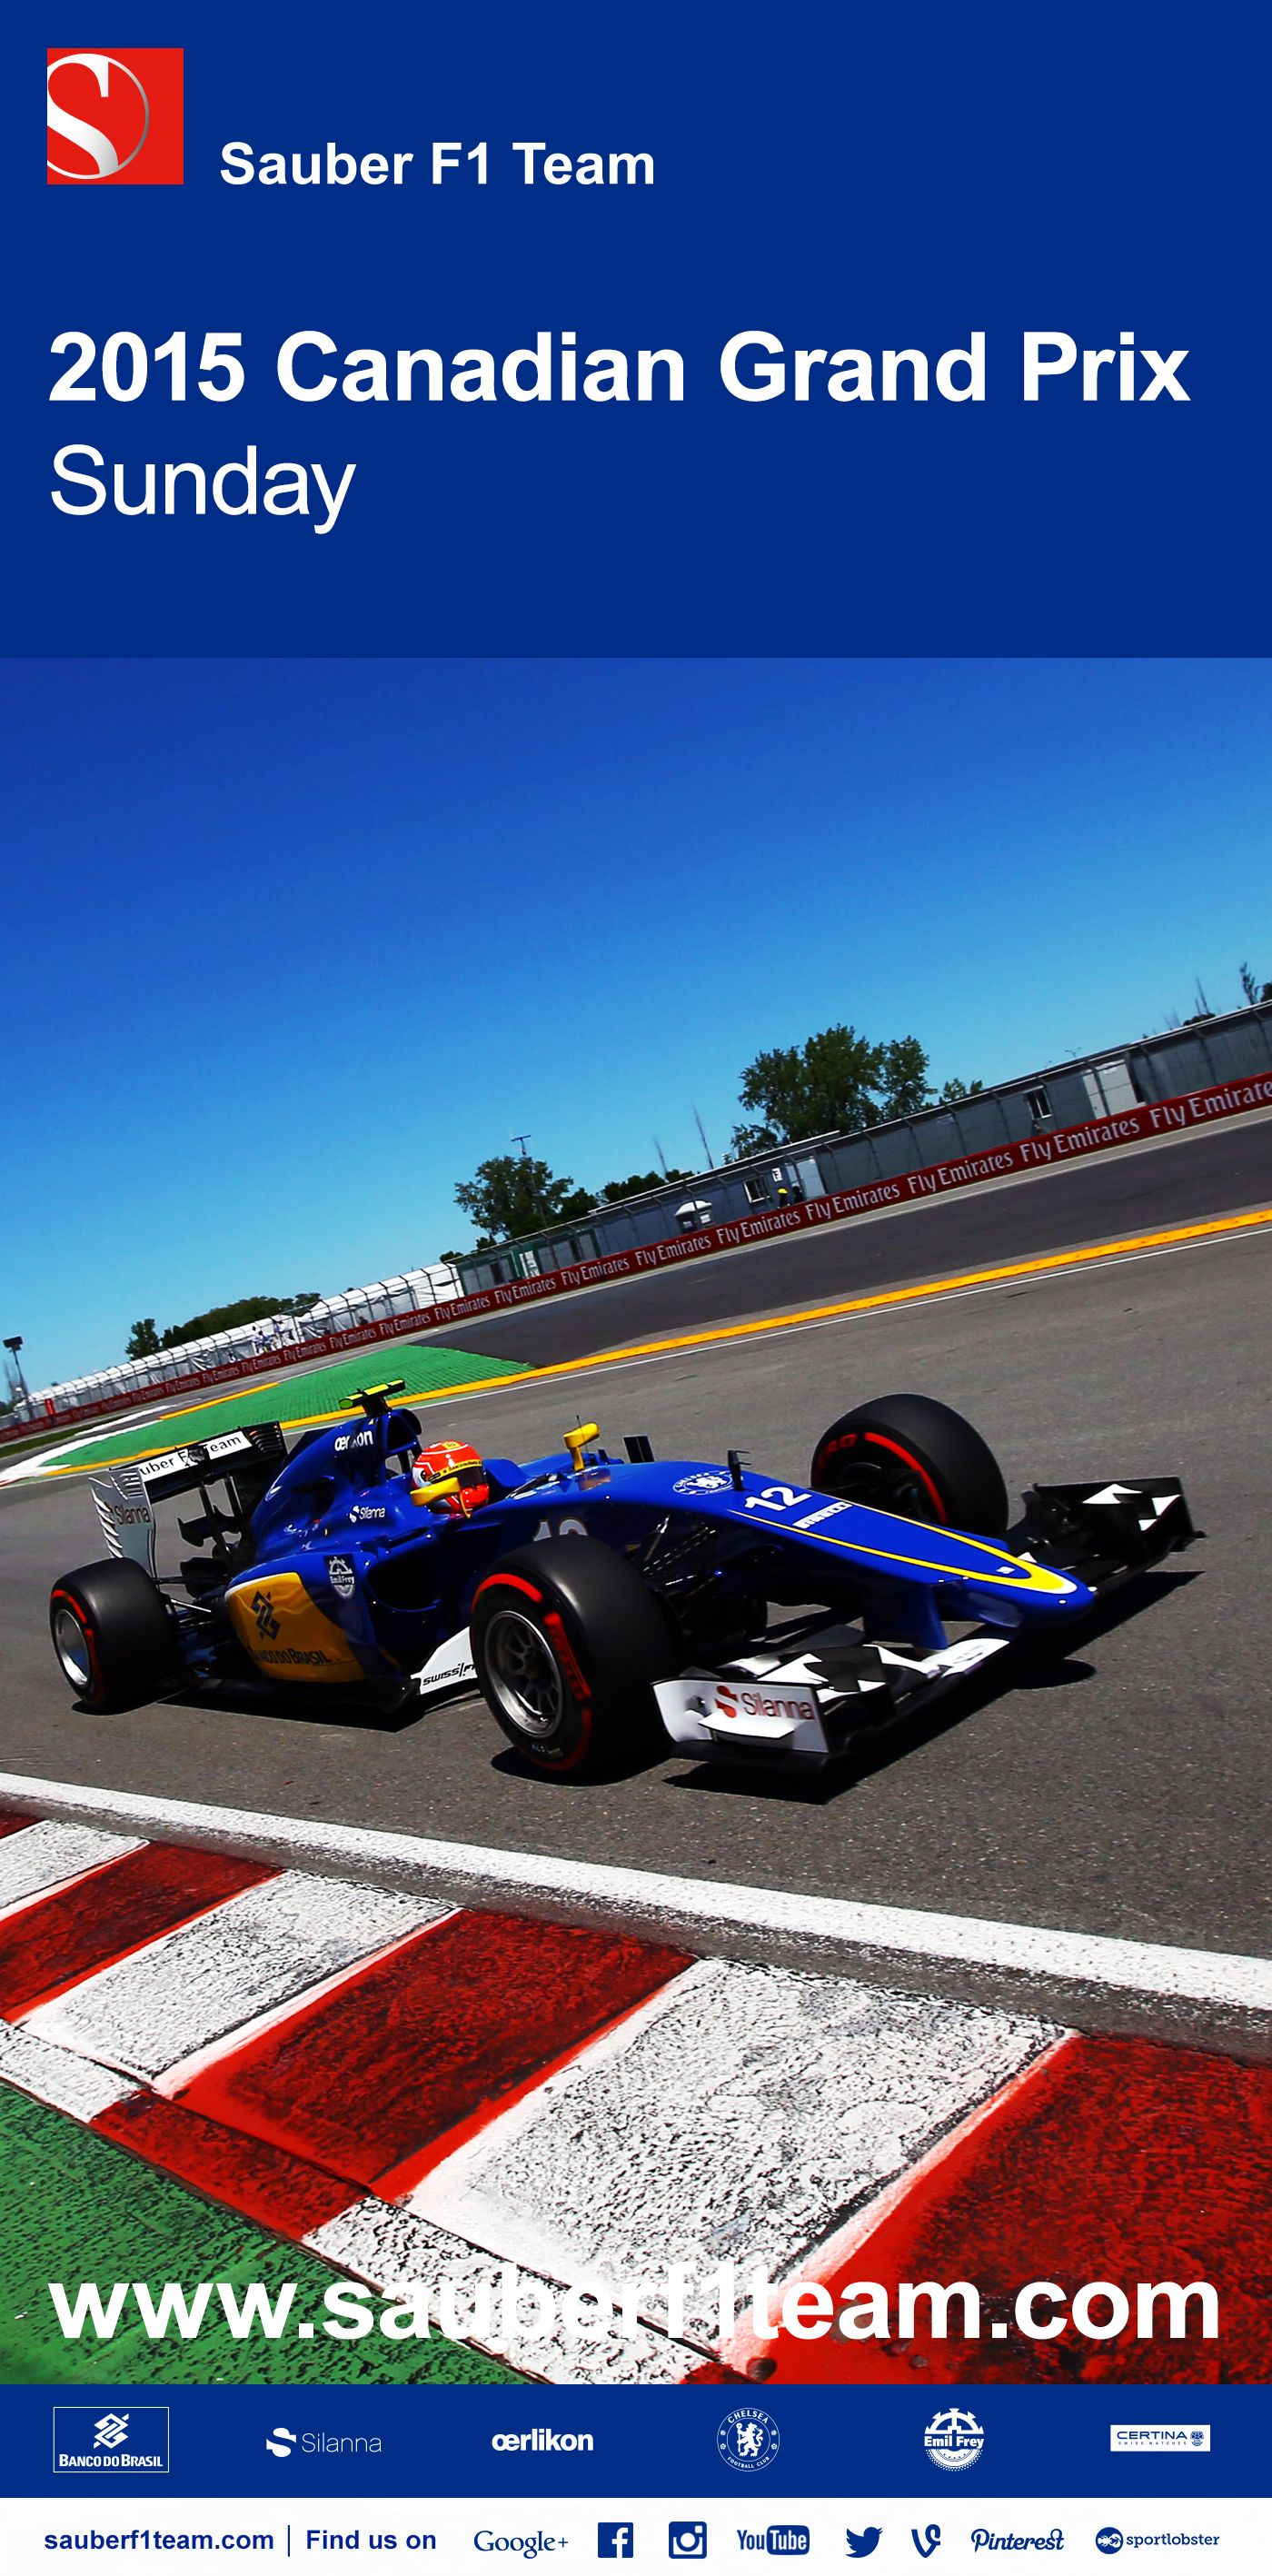 bf7c7d33b11a Disappointing lack of pace puts Marcus and Felipe on P12 and P16 - Sauber F1  Team - full report and quotes on our website -  F1  SauberF1Team  Formula1  ...